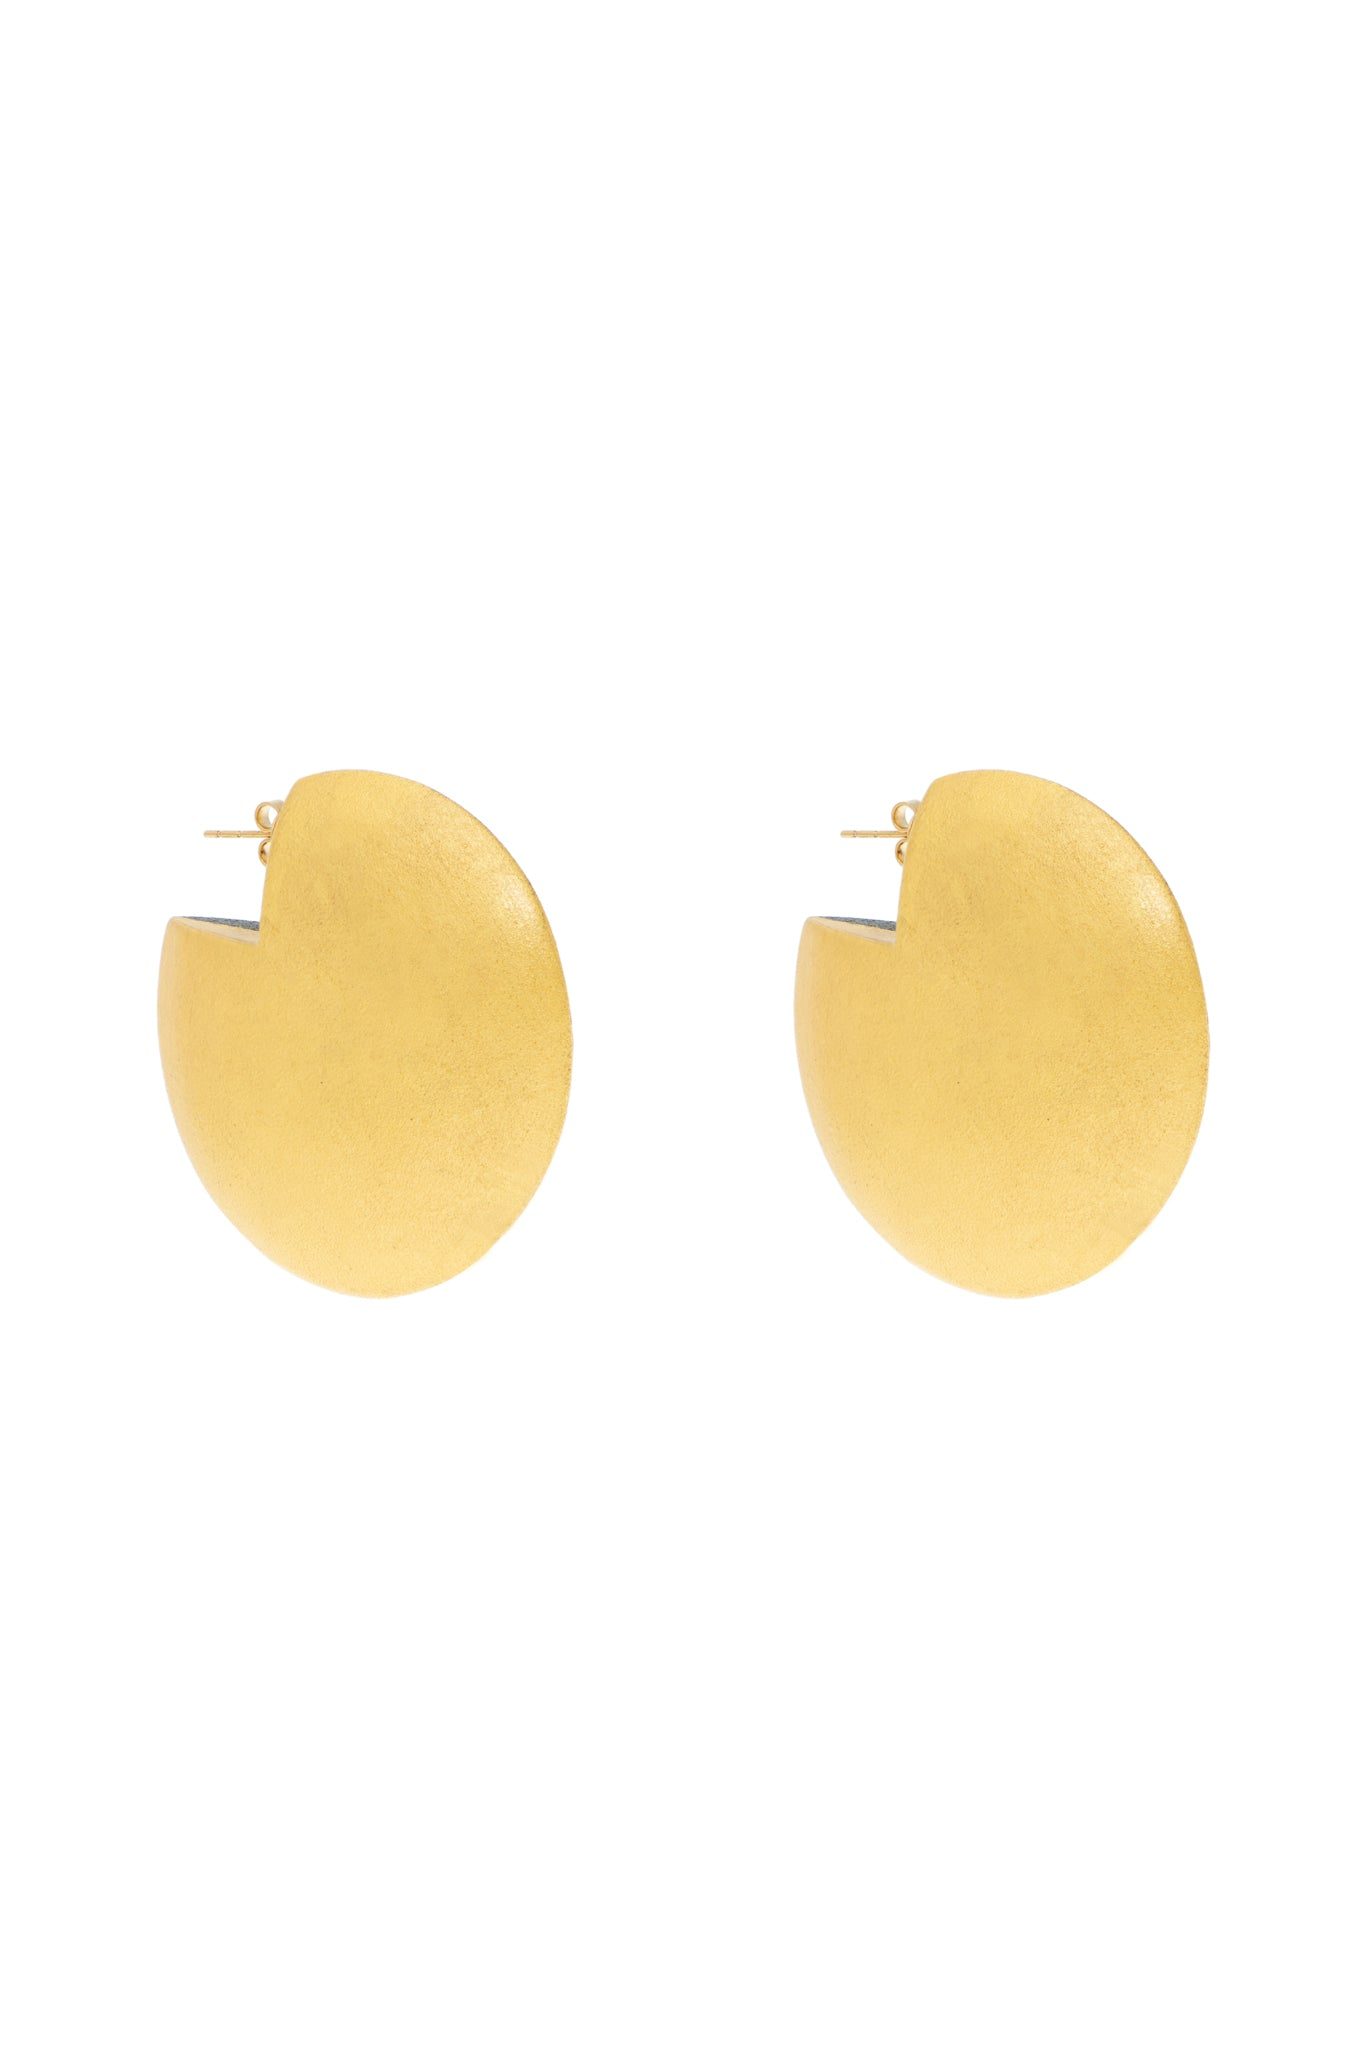 GOLD DISK WOOD EARRINGS